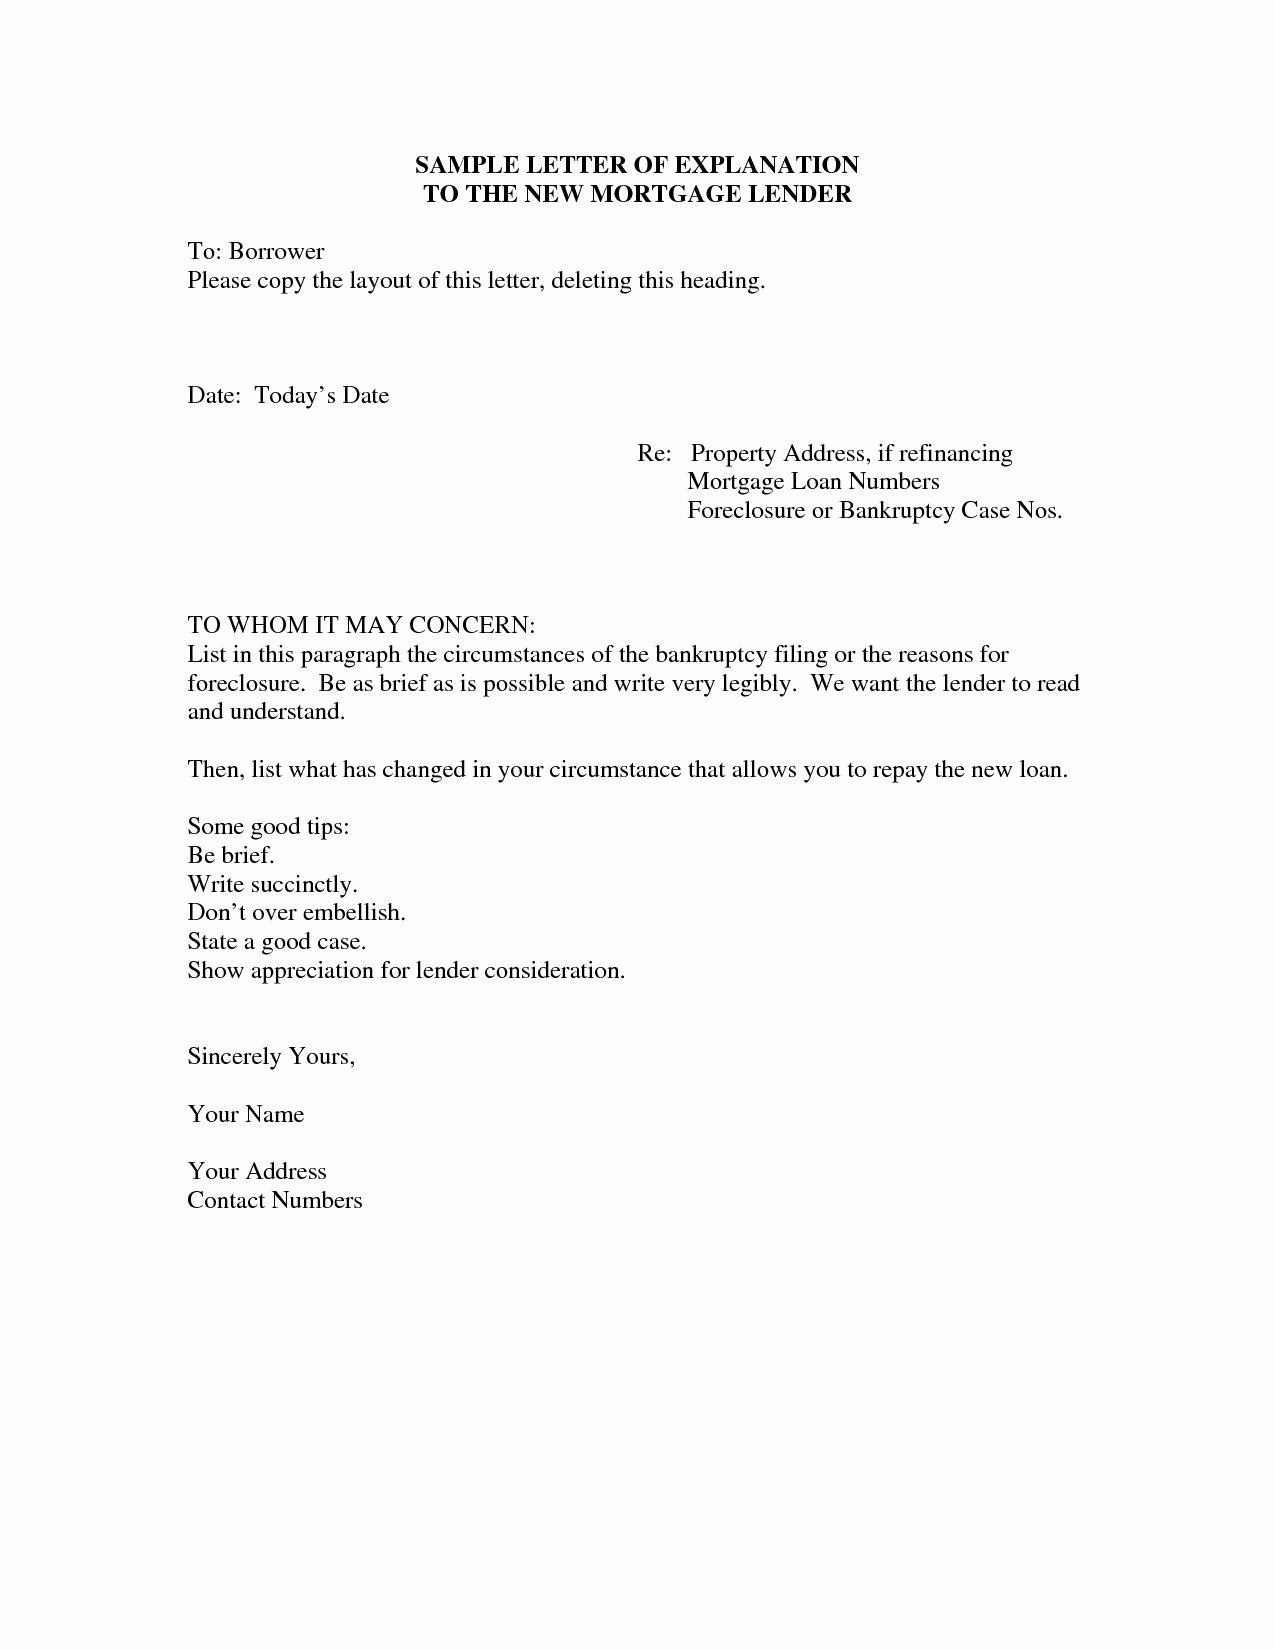 Insolvency Letter to Creditors Template Unique Insolvency Letter to Creditors Template Samples